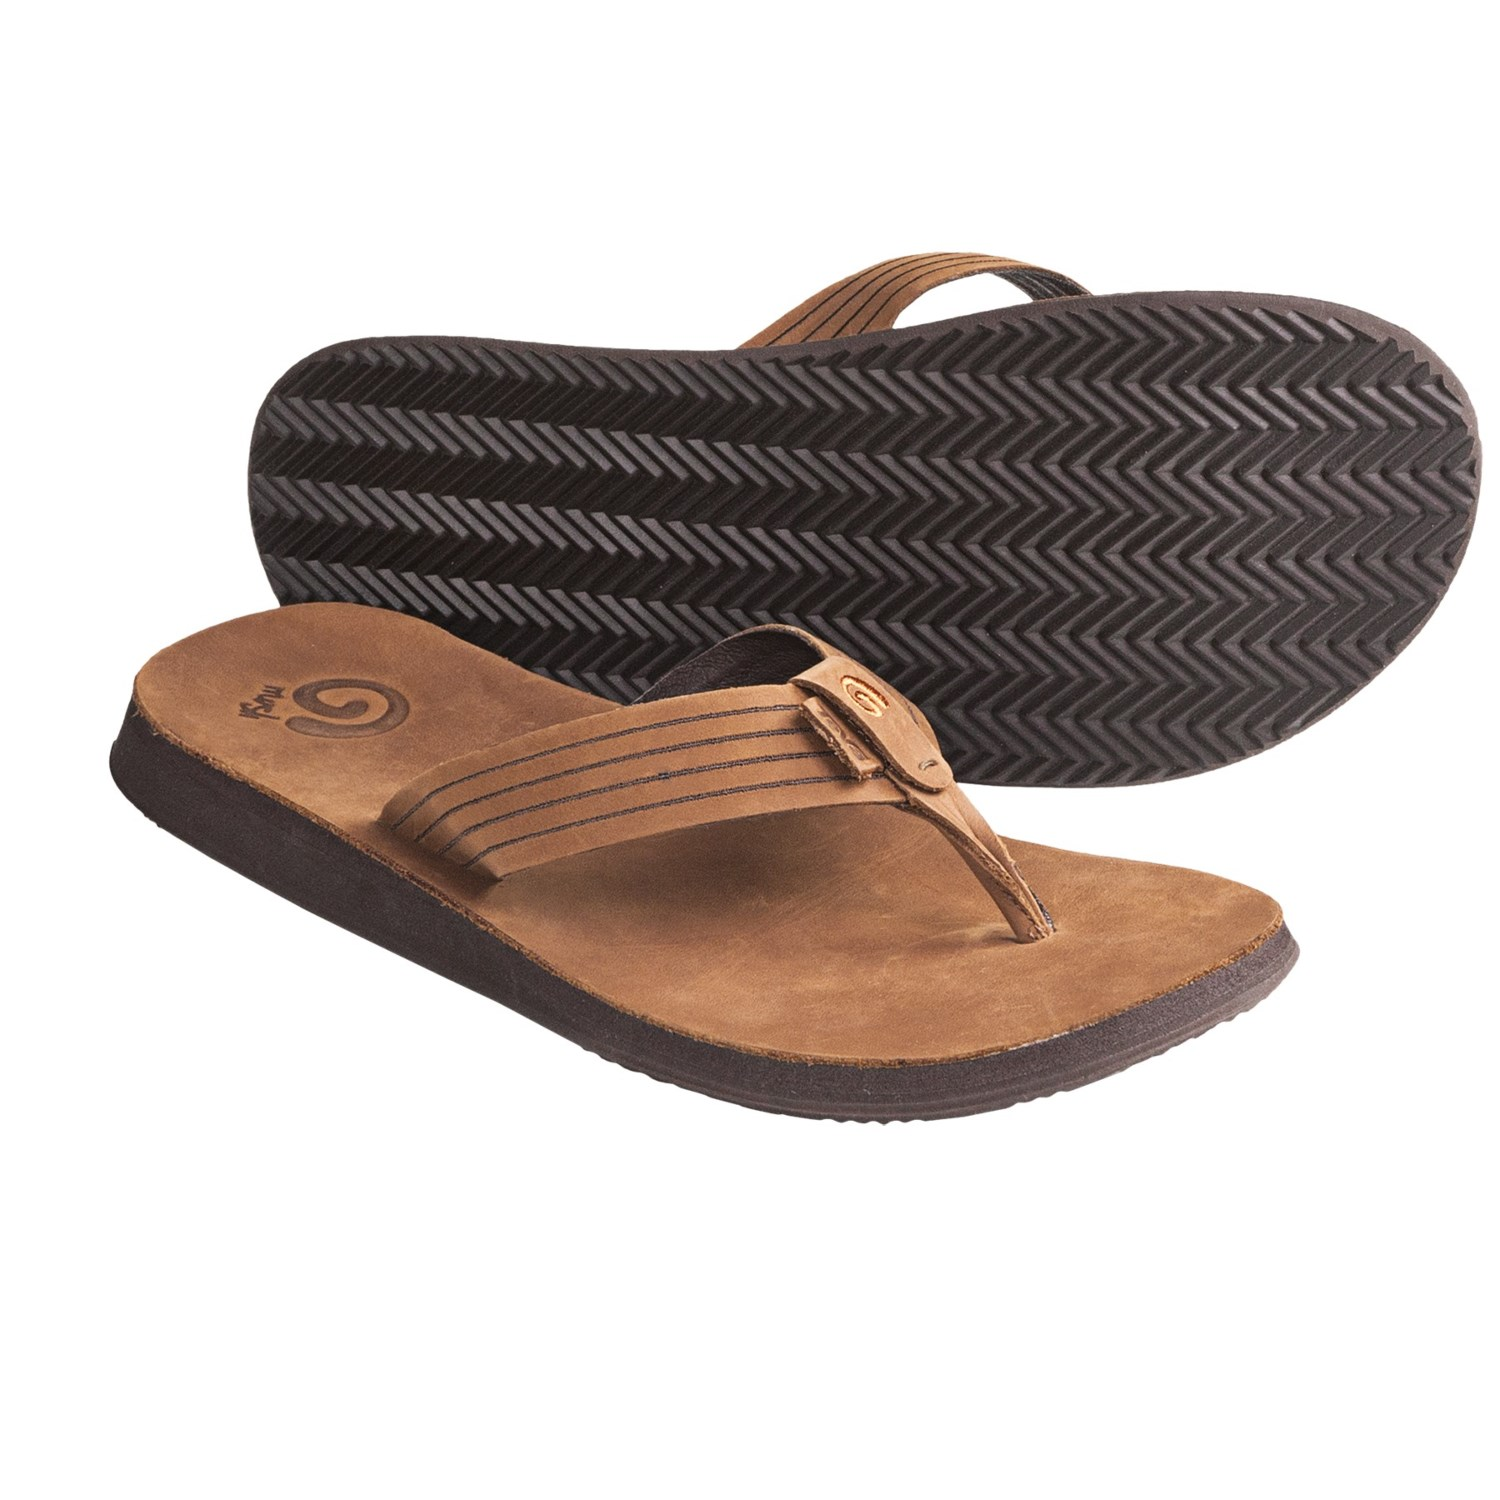 Teva Redondo Flip Flop Sandals For Men 6067k Save 28